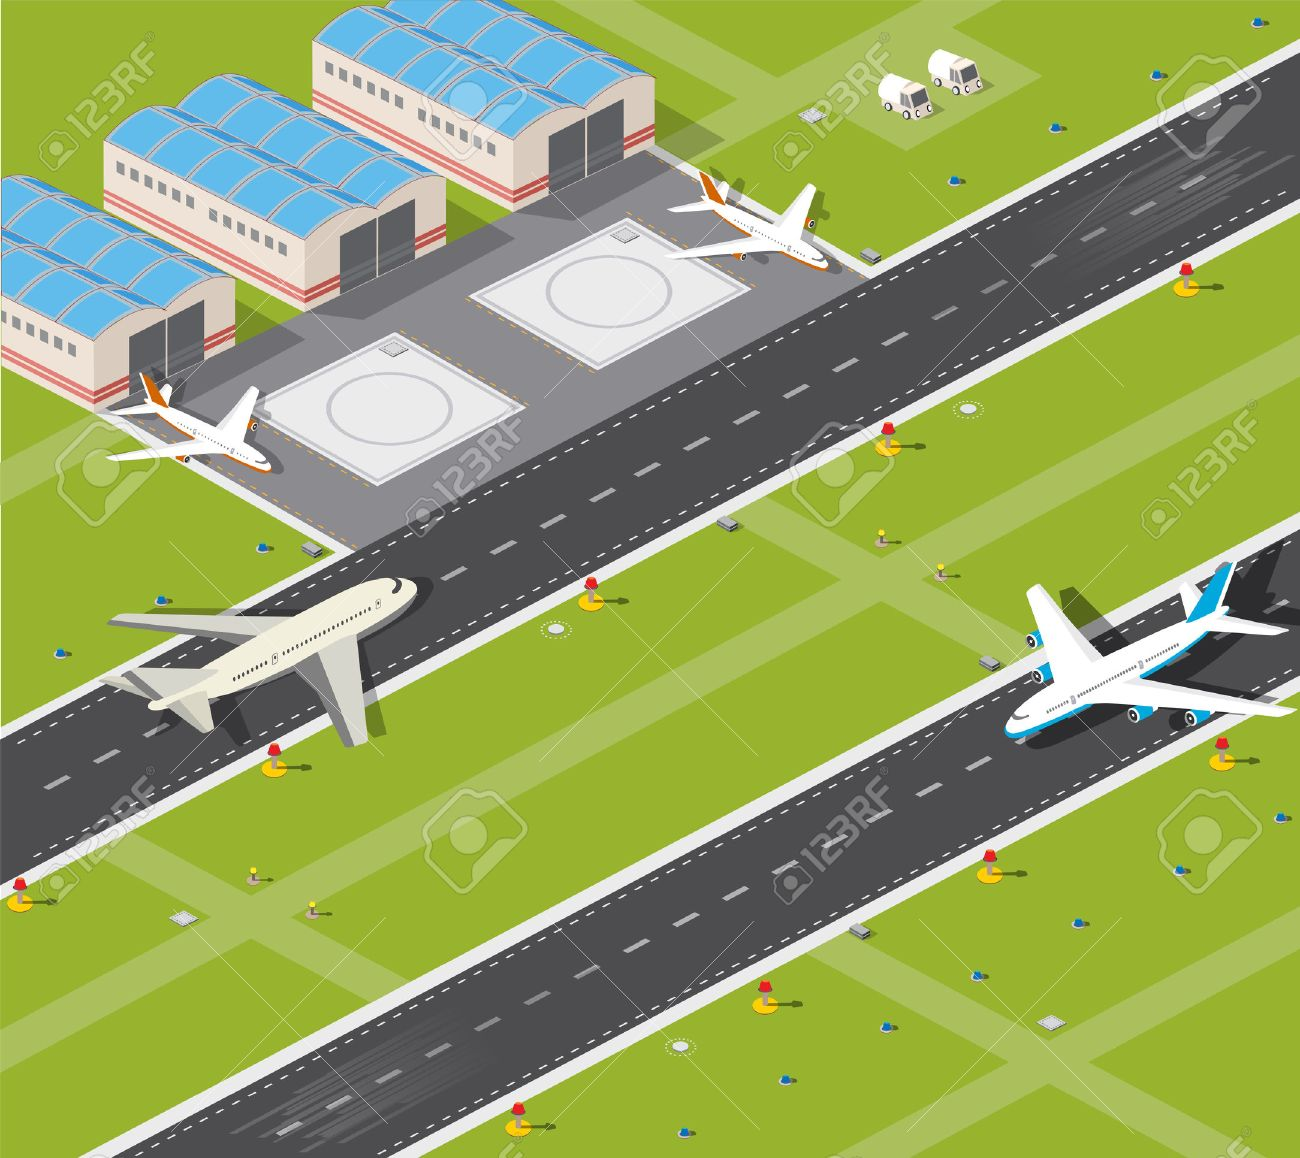 Plane On Runway Clipart.